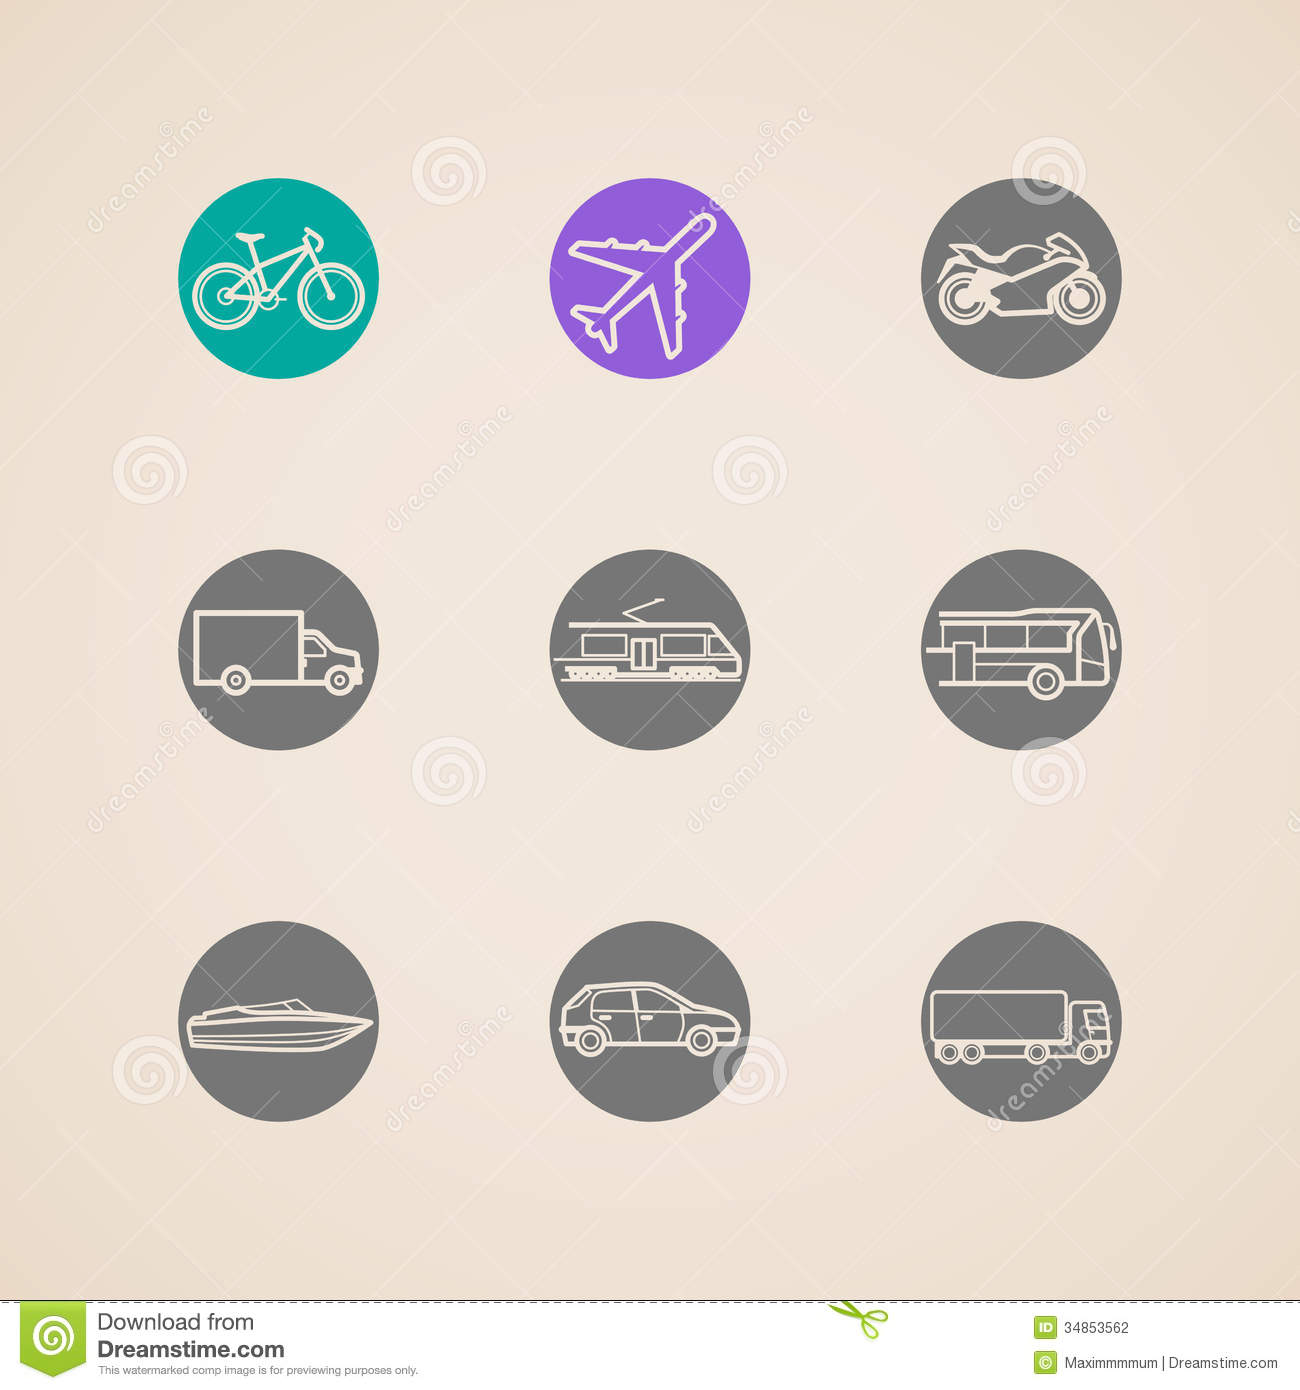 10 Transportation Mode Icon Images